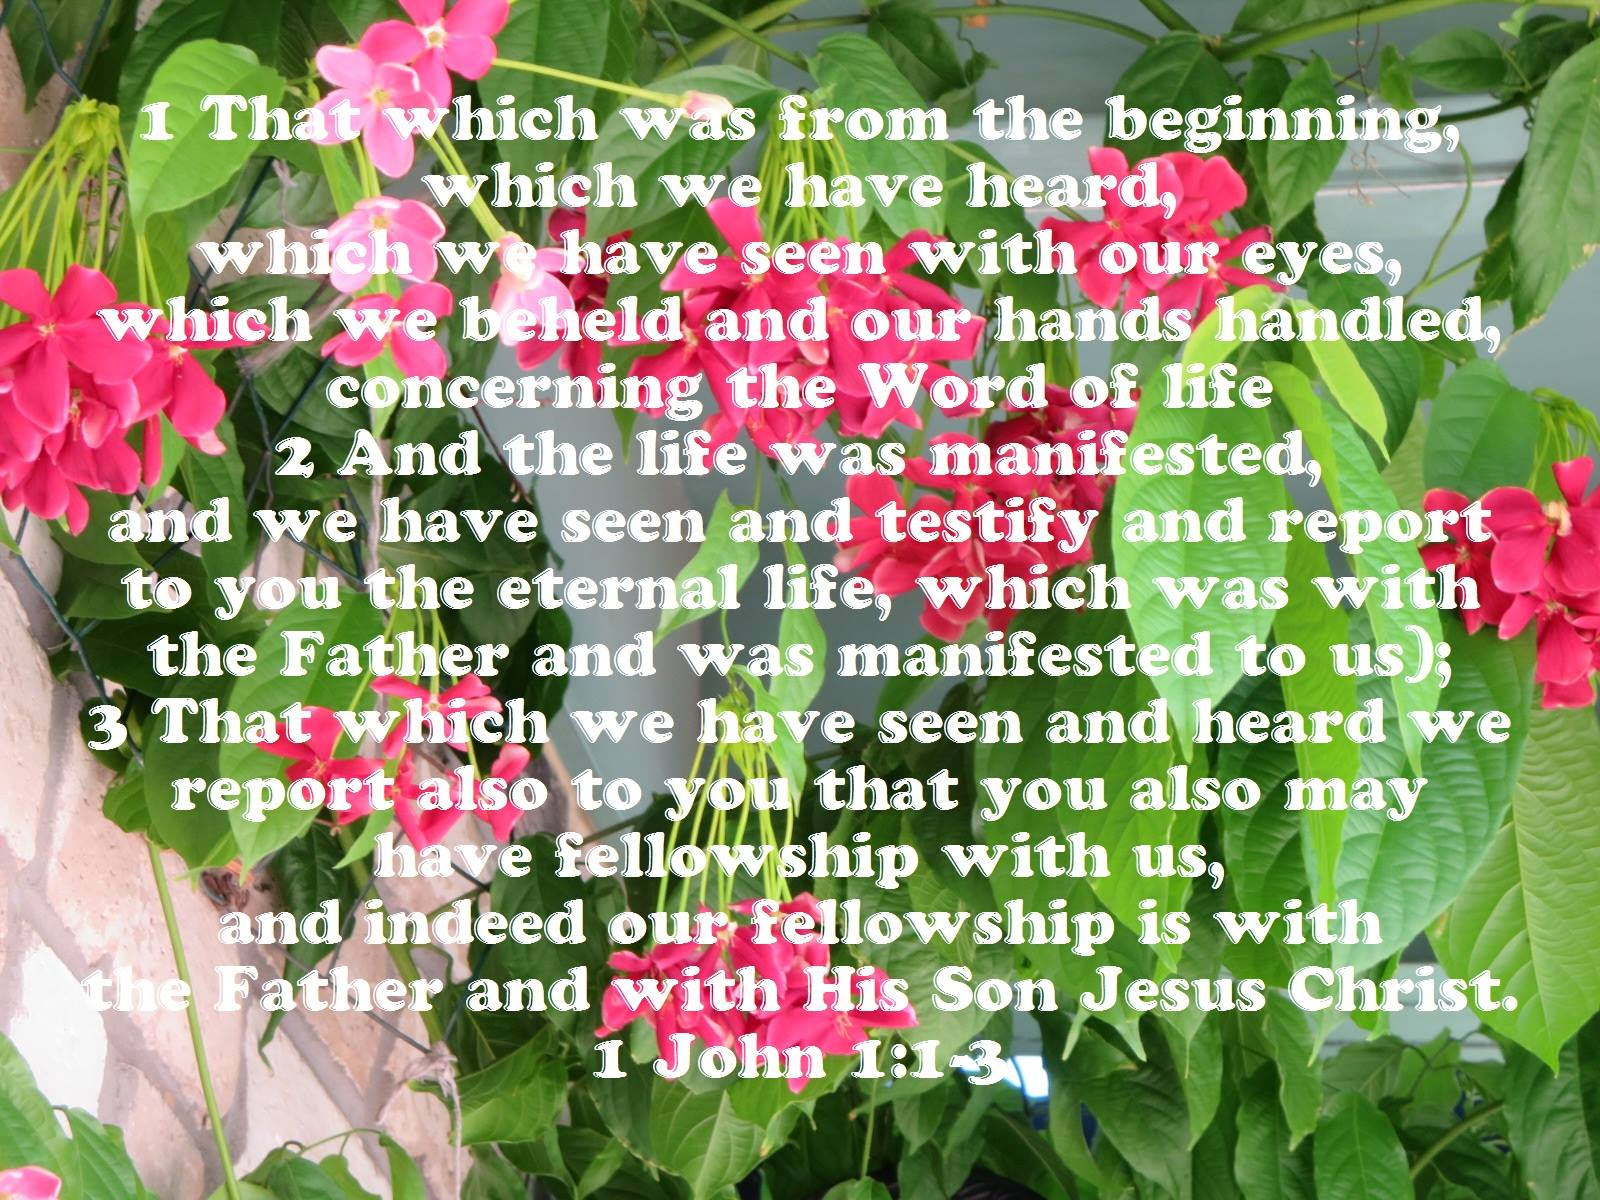 1 John 1:1-3 That which was from the beginning, which we have heard, which we have seen with our eyes, which we beheld and our hands handled, concerning the Word of life, (And the life was manifested, and we have seen and testify and report to you the eternal life, which was with the Father and was manifested to us); That which we have seen and heard we report also to you that you also may have fellowship with us, and indeed our fellowship is with the Father and with His Son Jesus Christ.